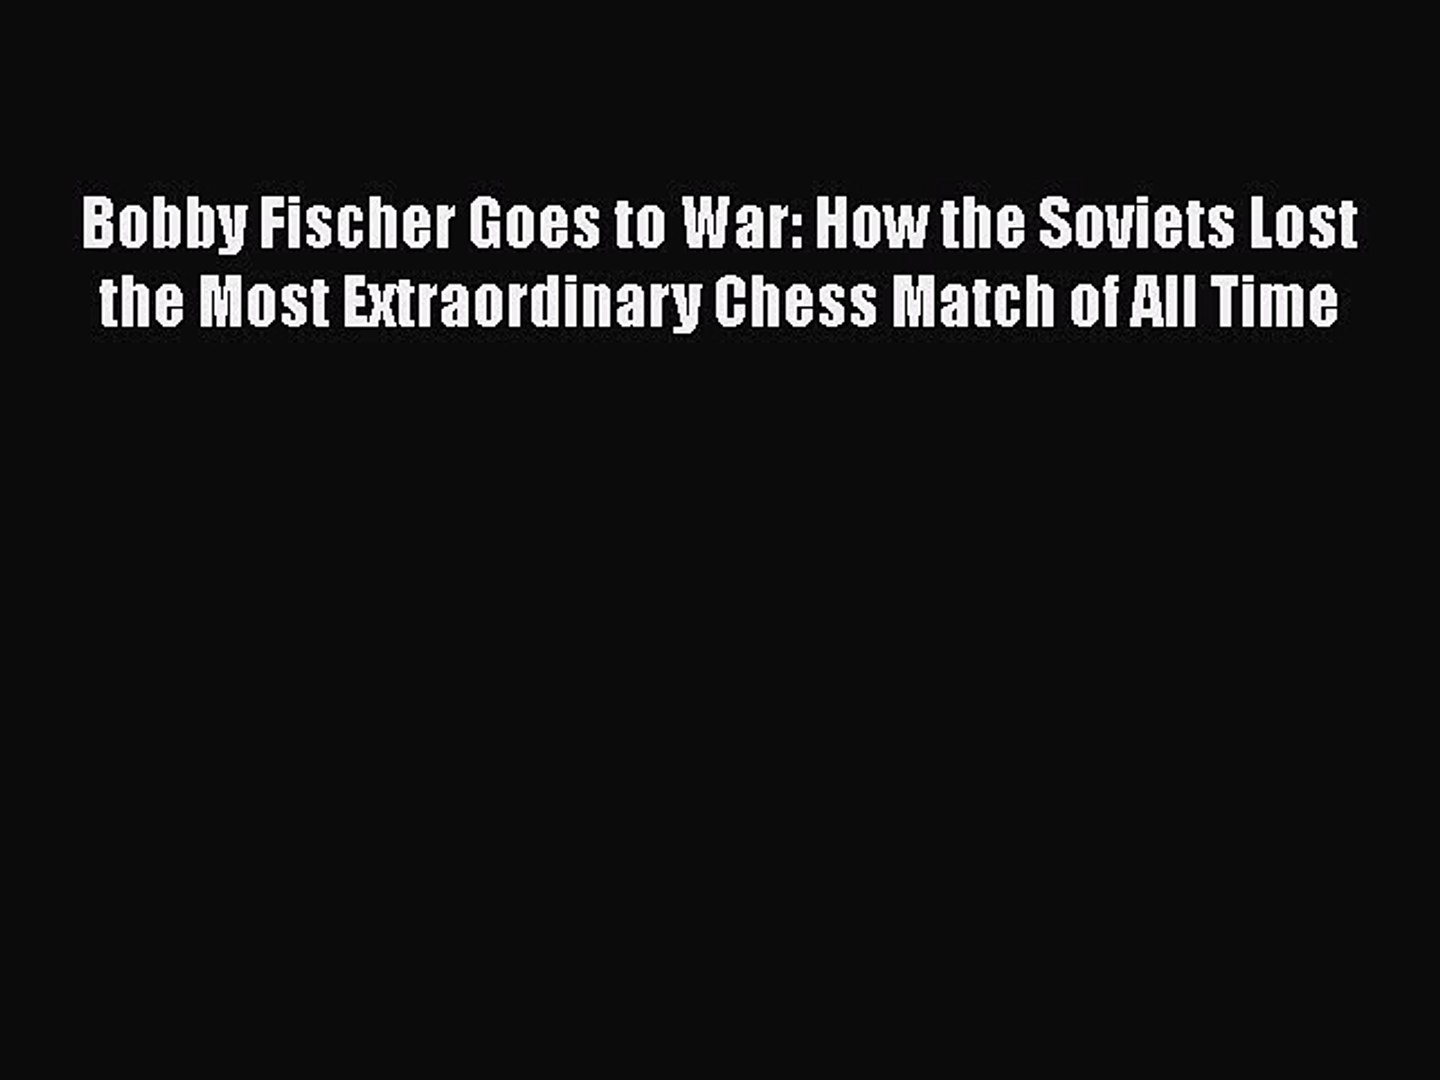 Download Bobby Fischer Goes to War: How the Soviets Lost the Most Extraordinary Chess Match